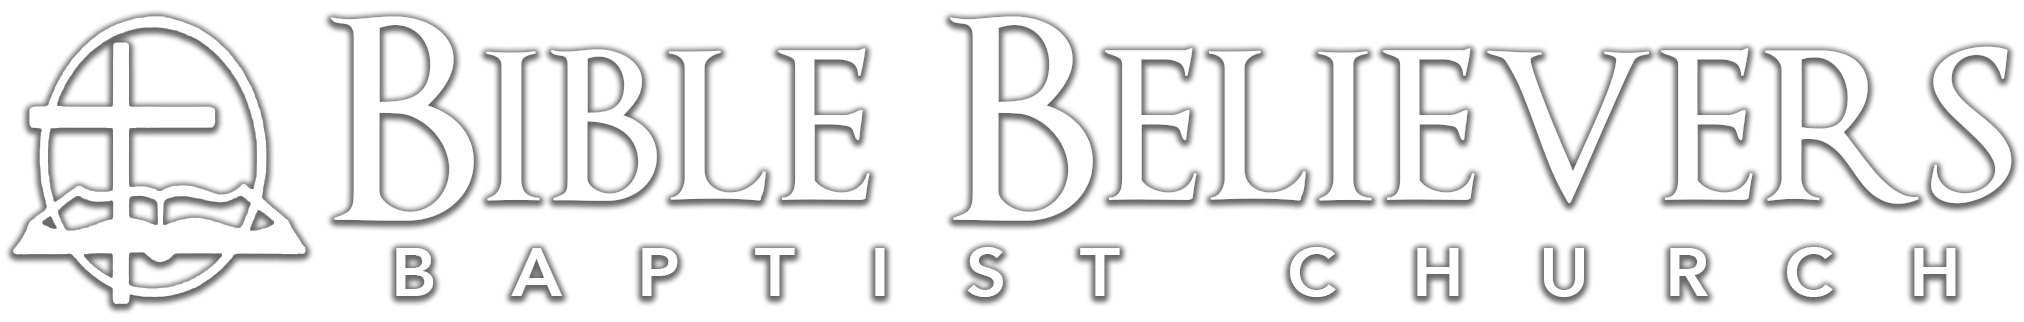 Bible Believers Logo